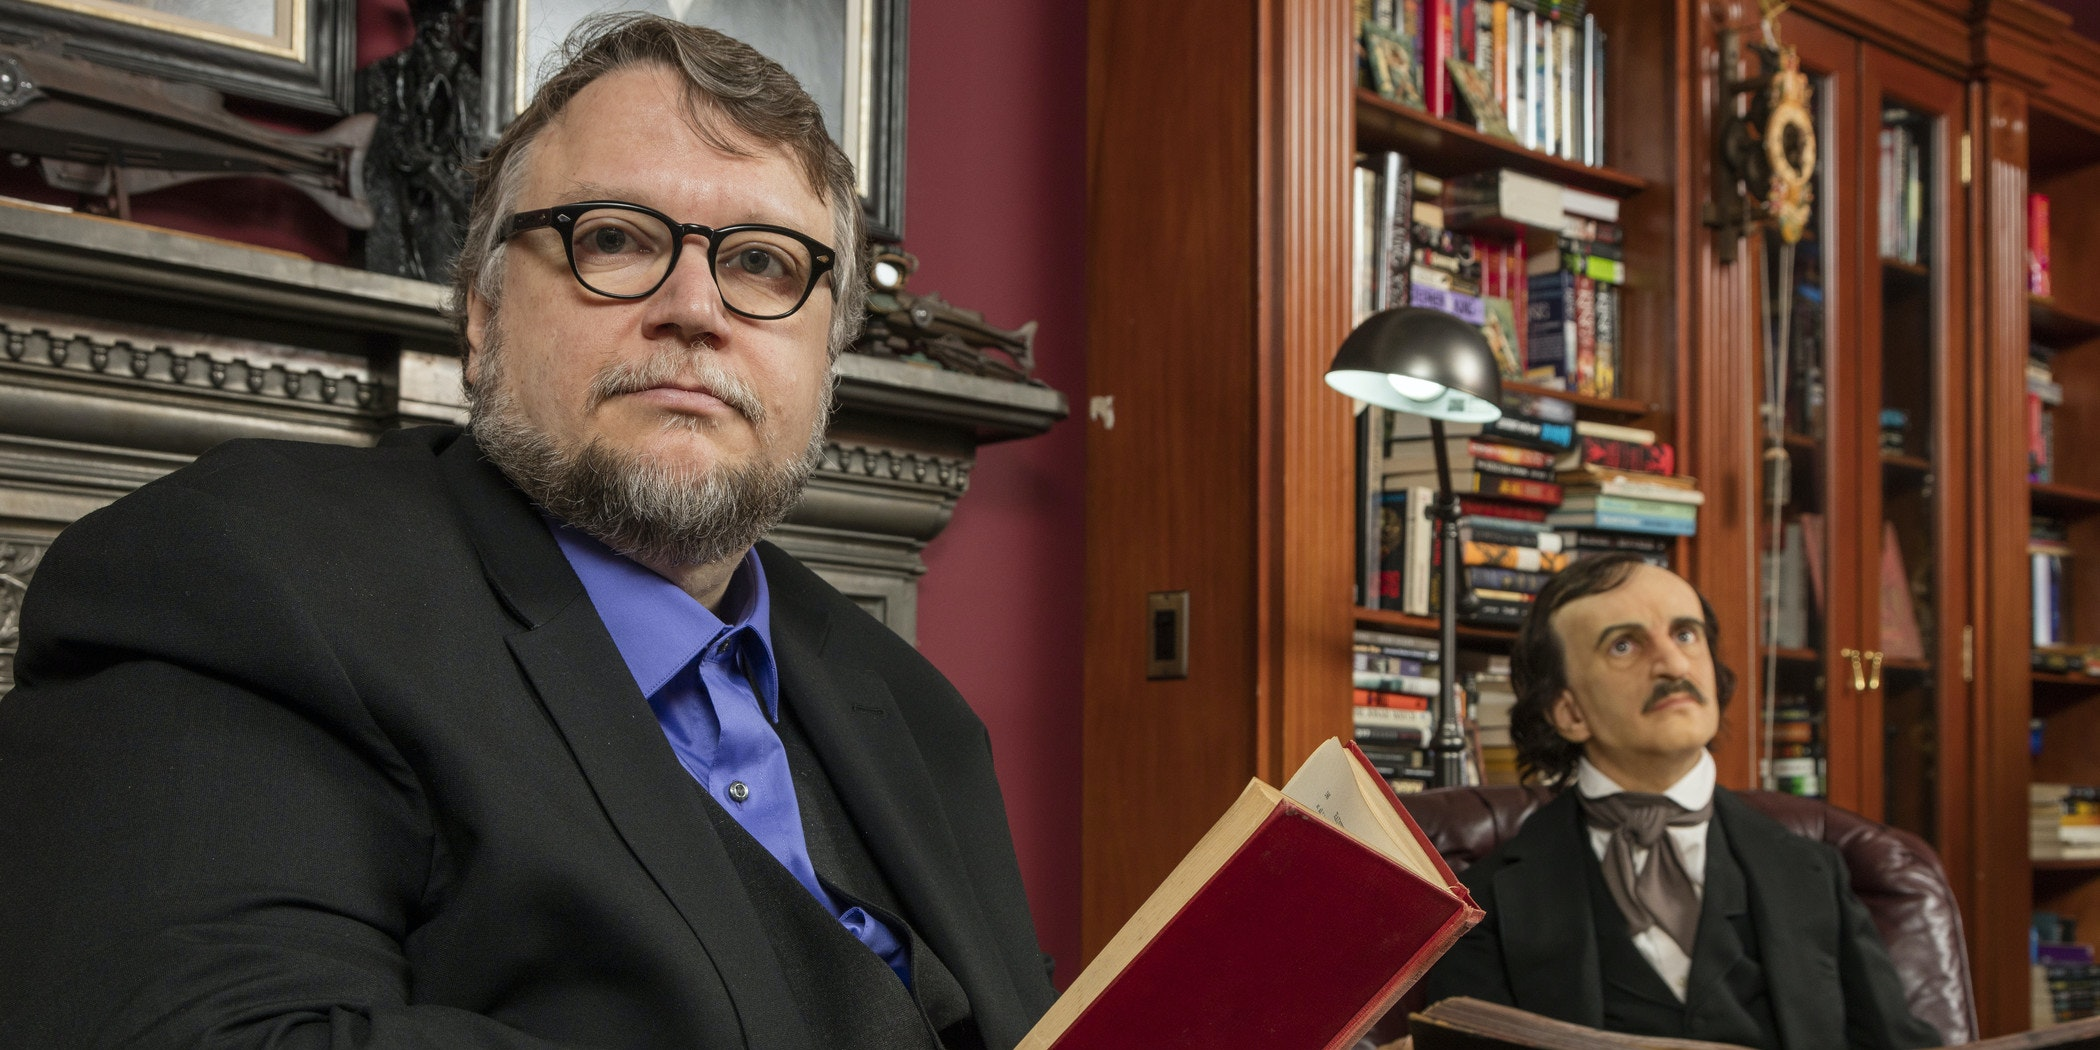 Guillermo del Toro's Bleak House and Aching Soul at LACMA